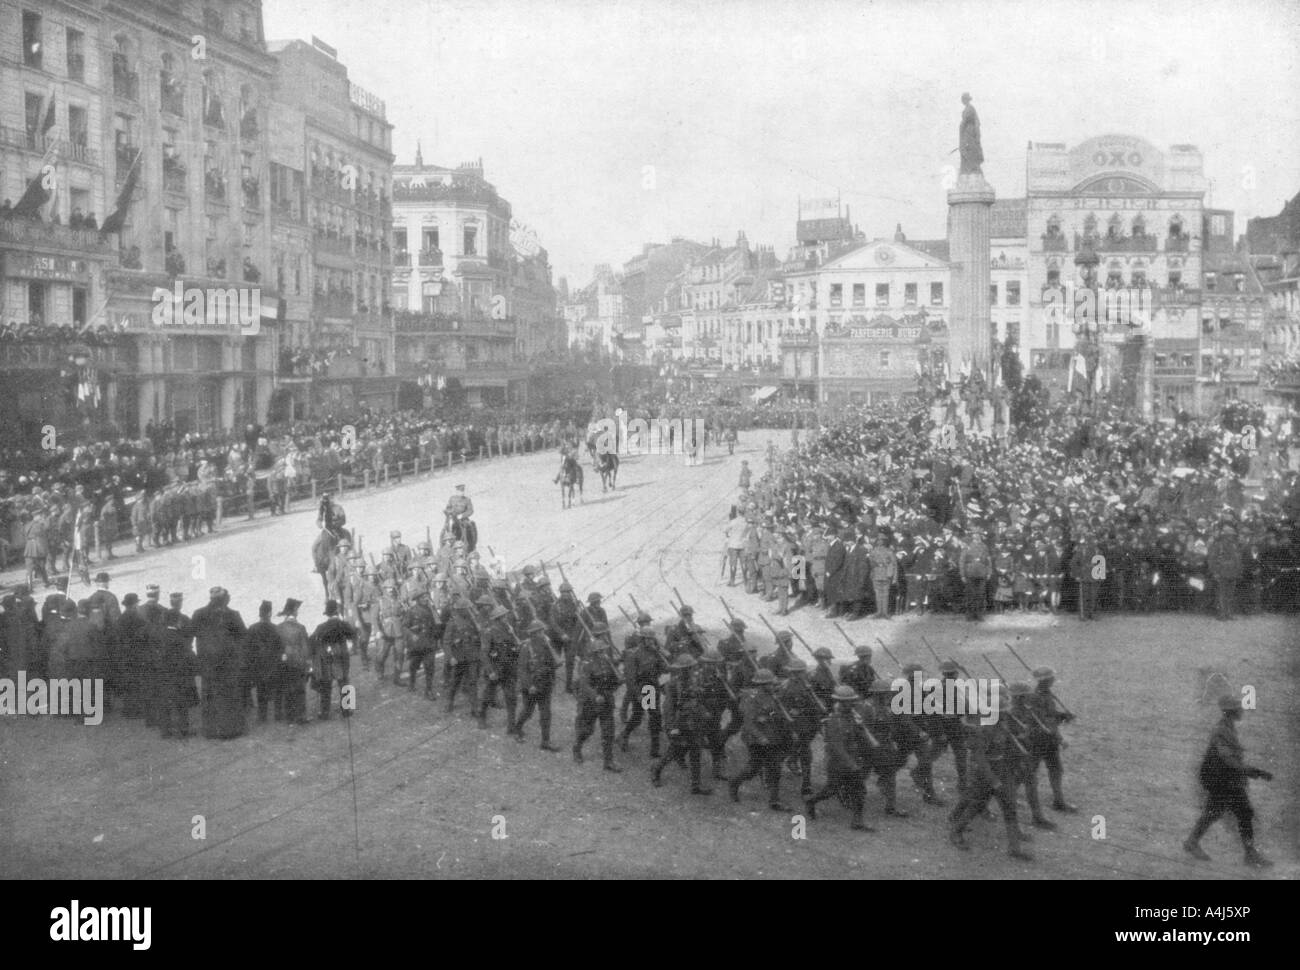 Lille being liberated by the British 5th Army, France, 17 October 1918. Artist: Unknown - Stock Image